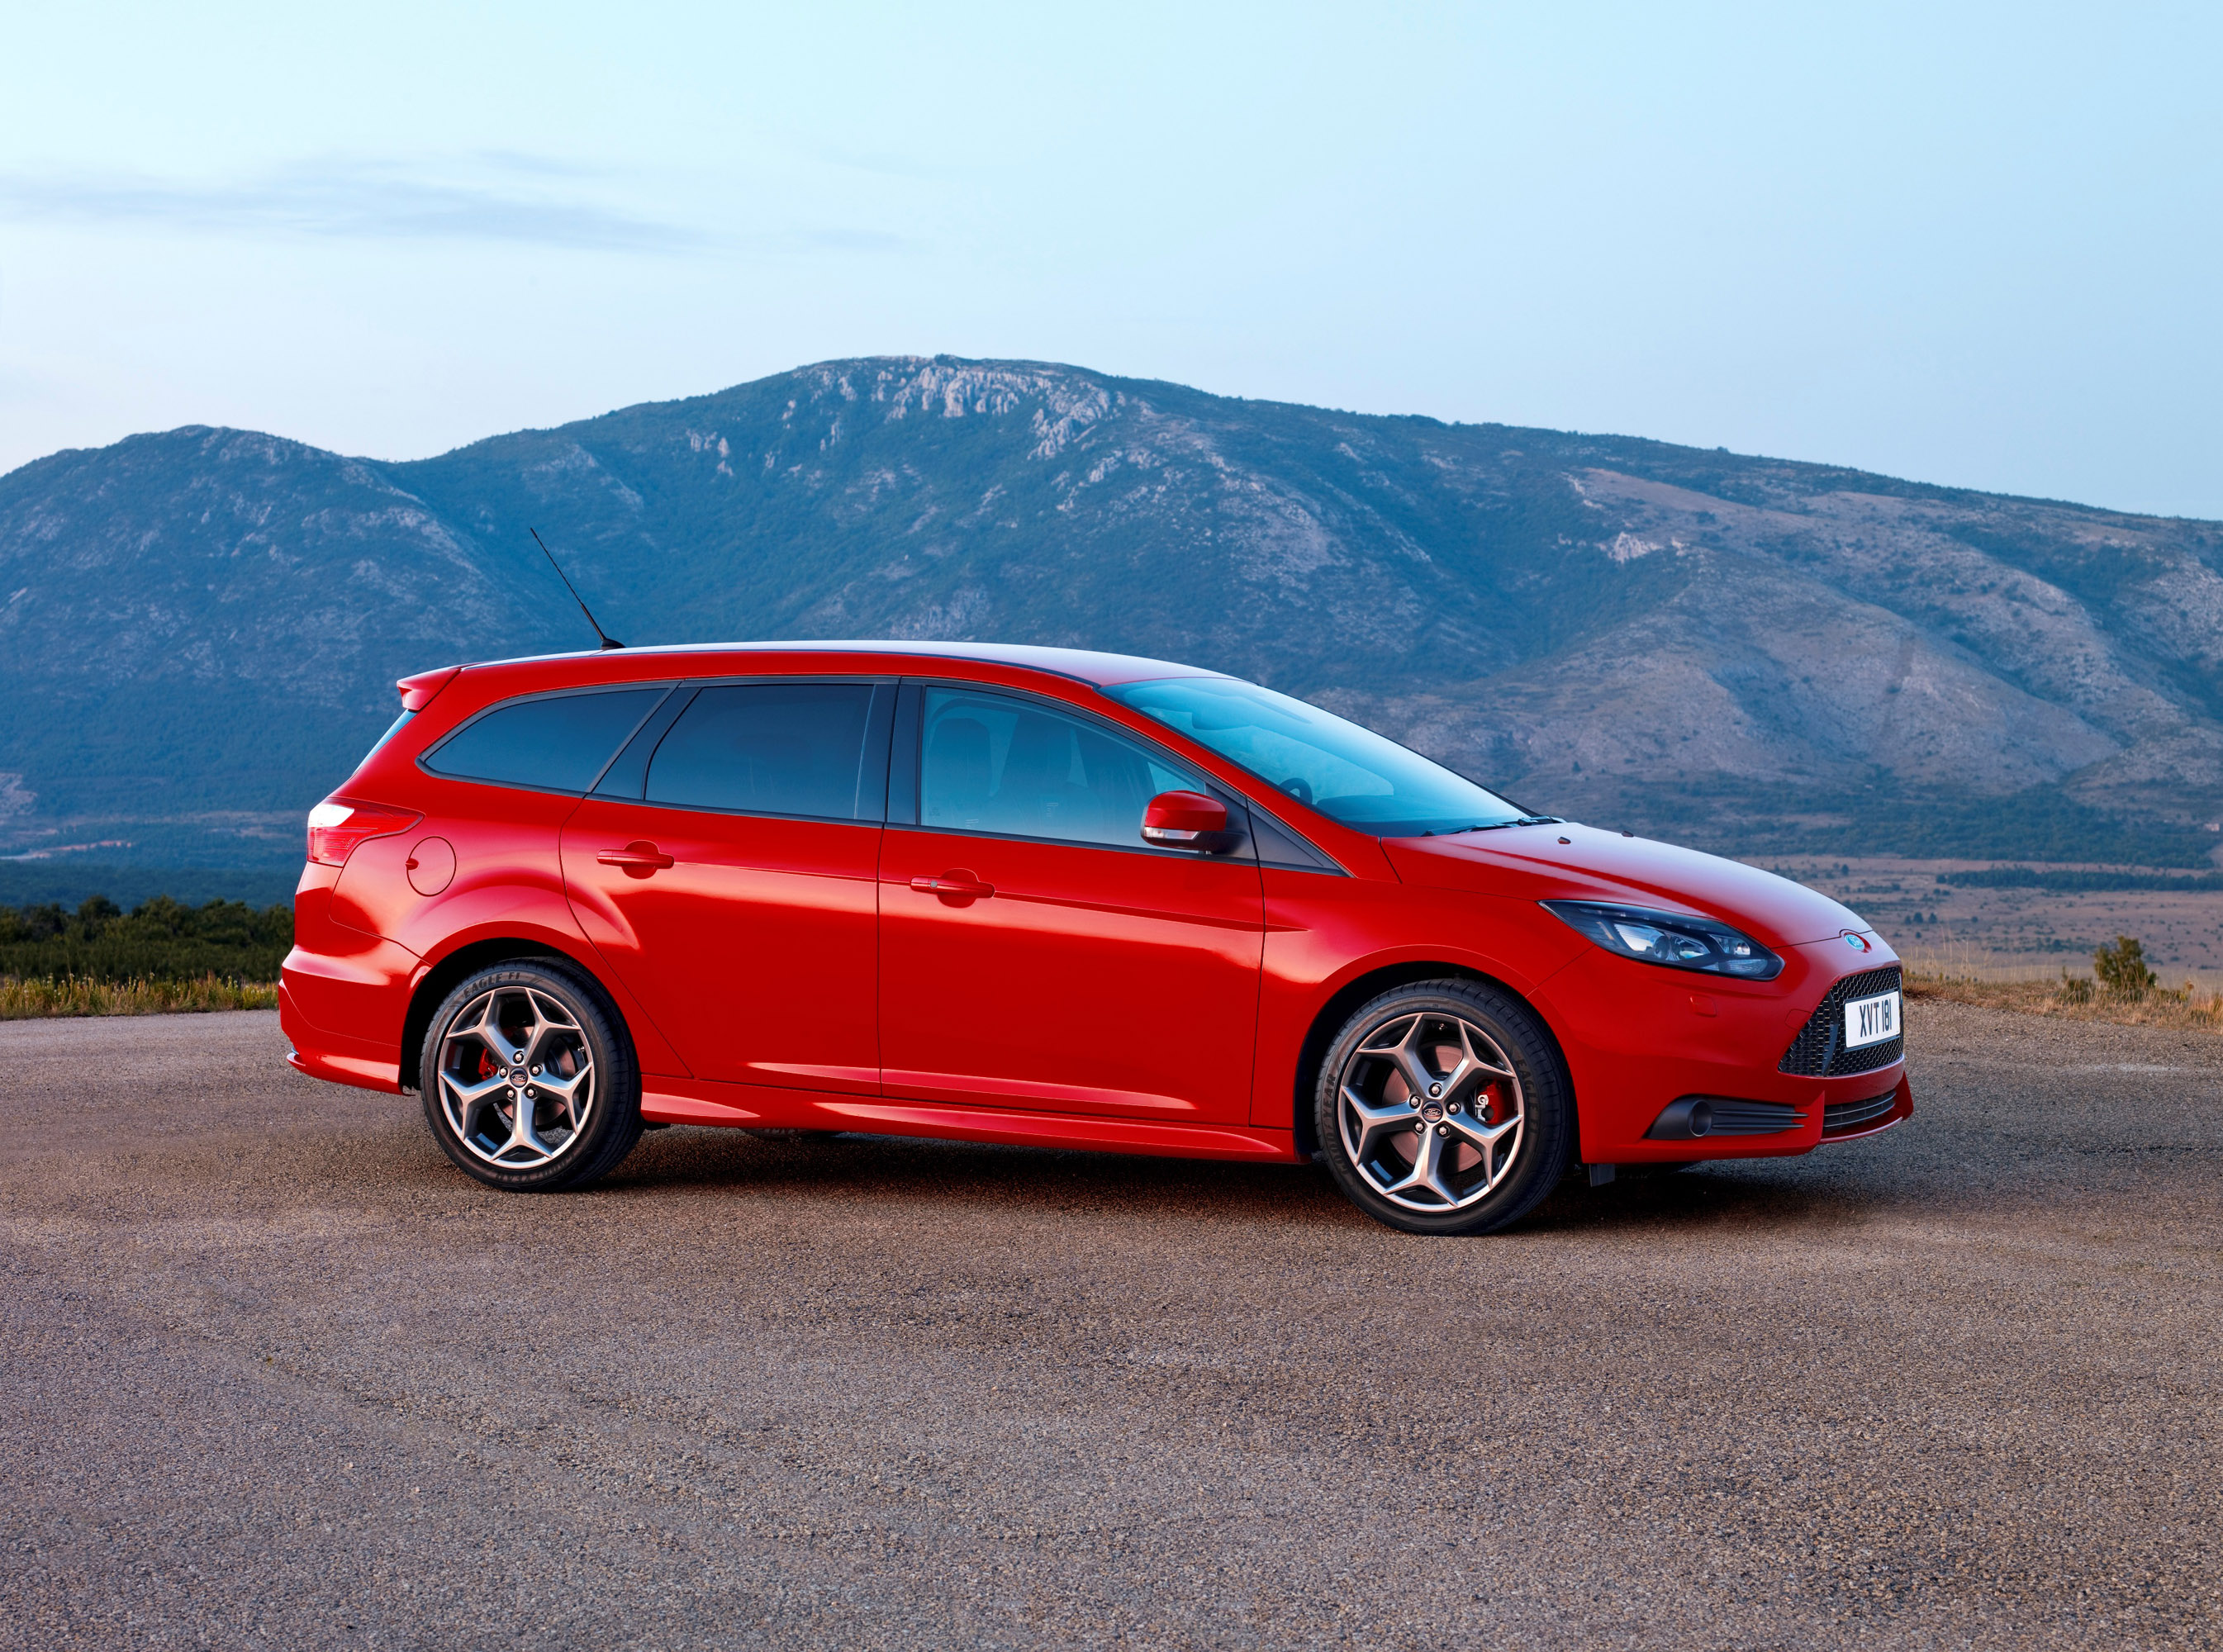 2012 Ford Focus St 5 Door And Wagon